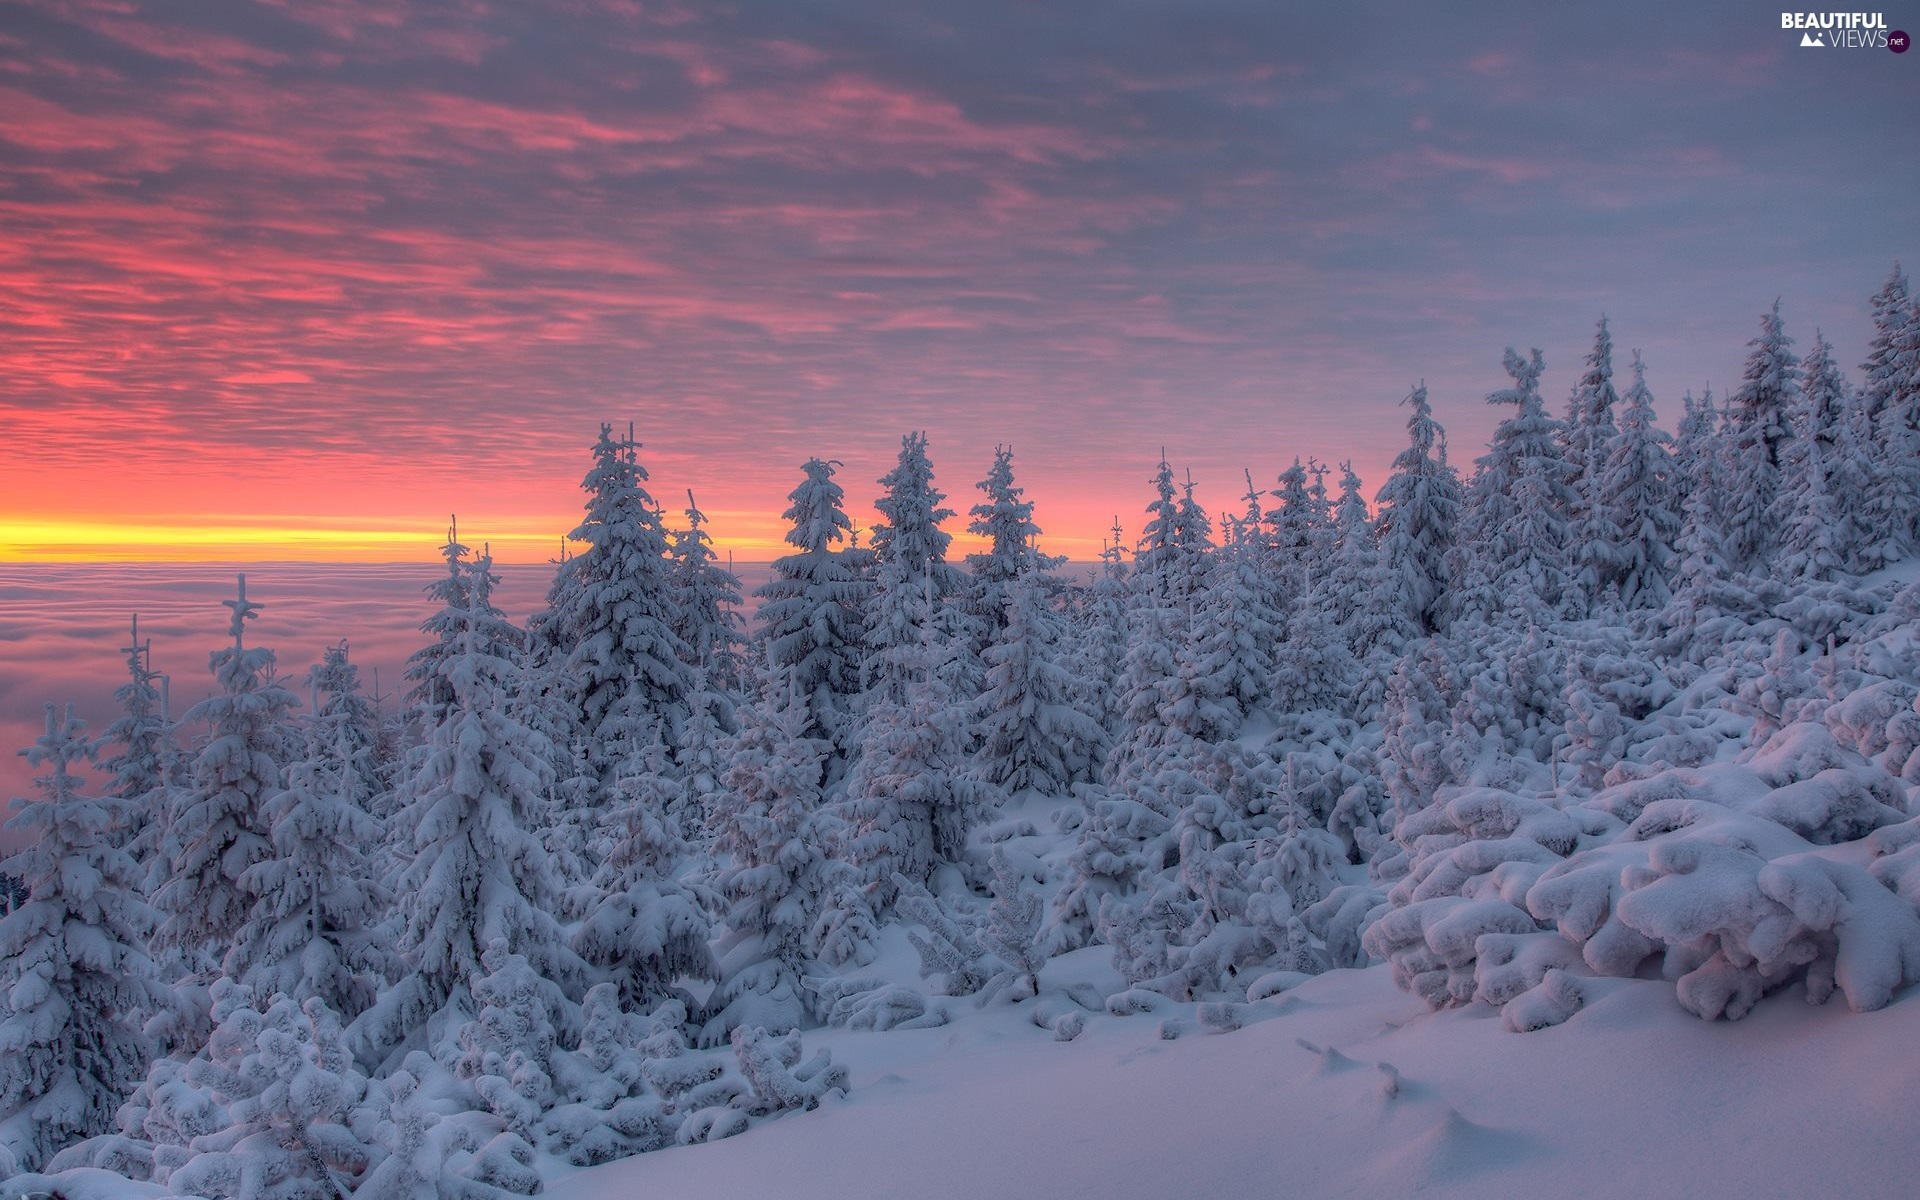 Snowy, winter, color, Sky, Spruces, Great Sunsets